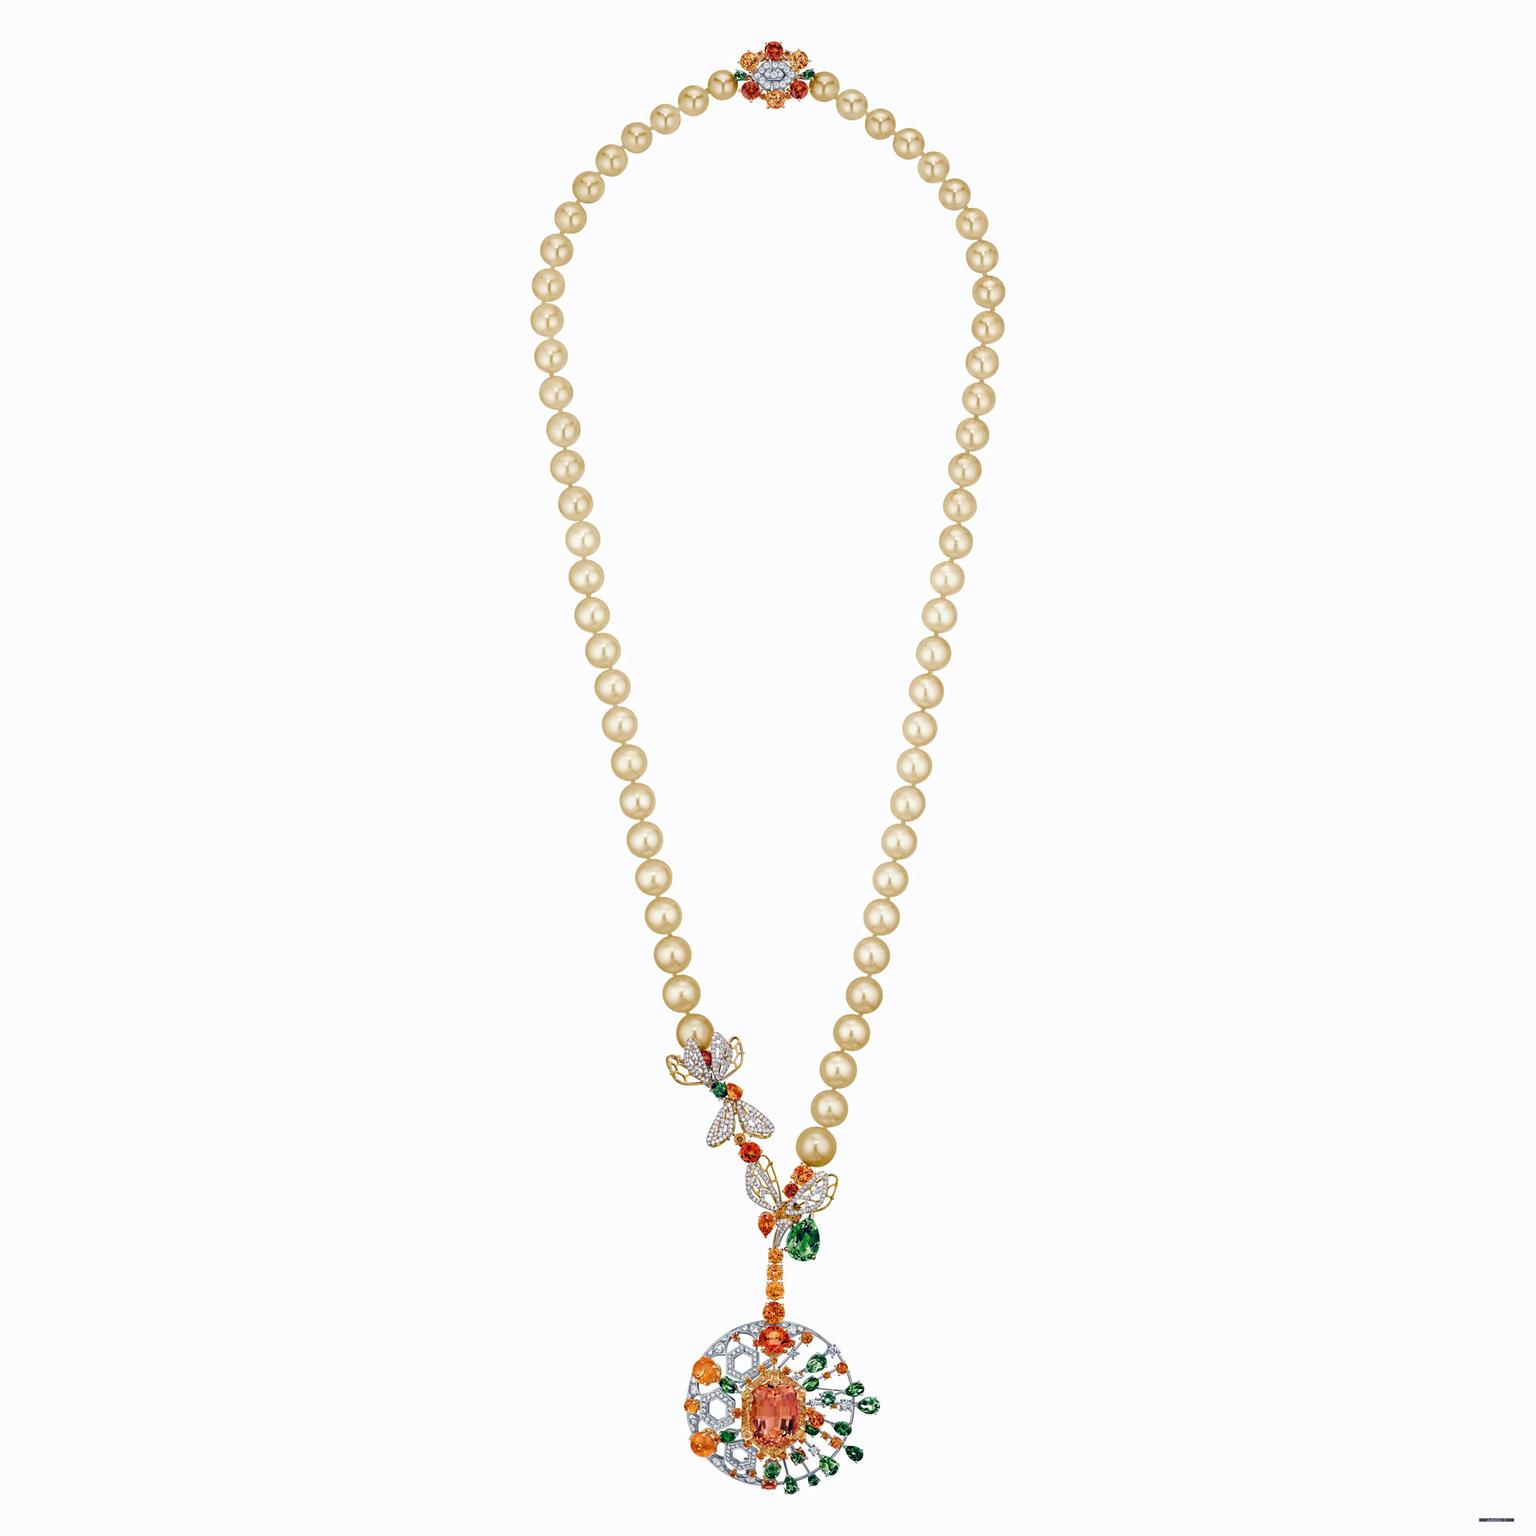 Chaumet Abeille tourmaline and garnet necklace